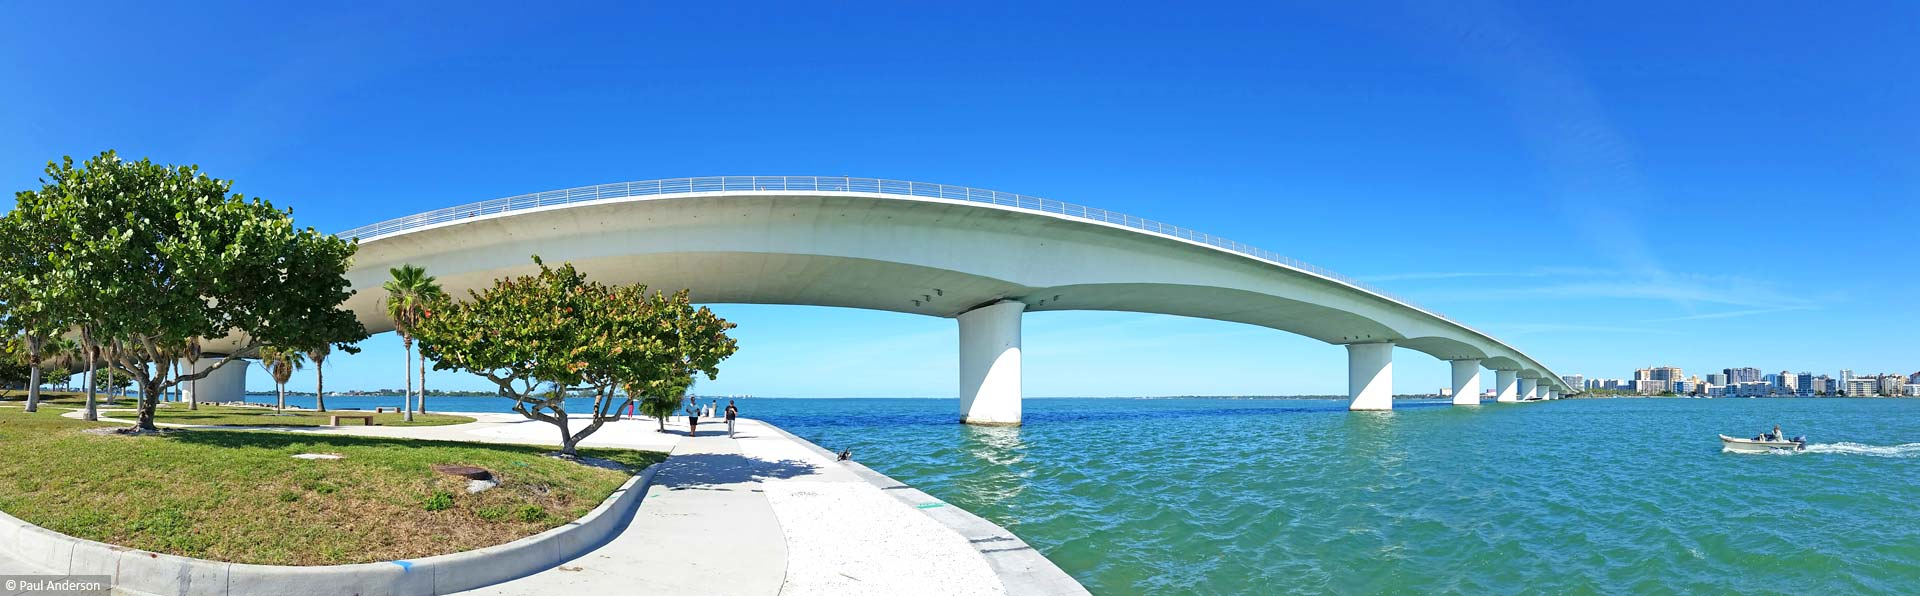 Ringling Bridge Panormaic